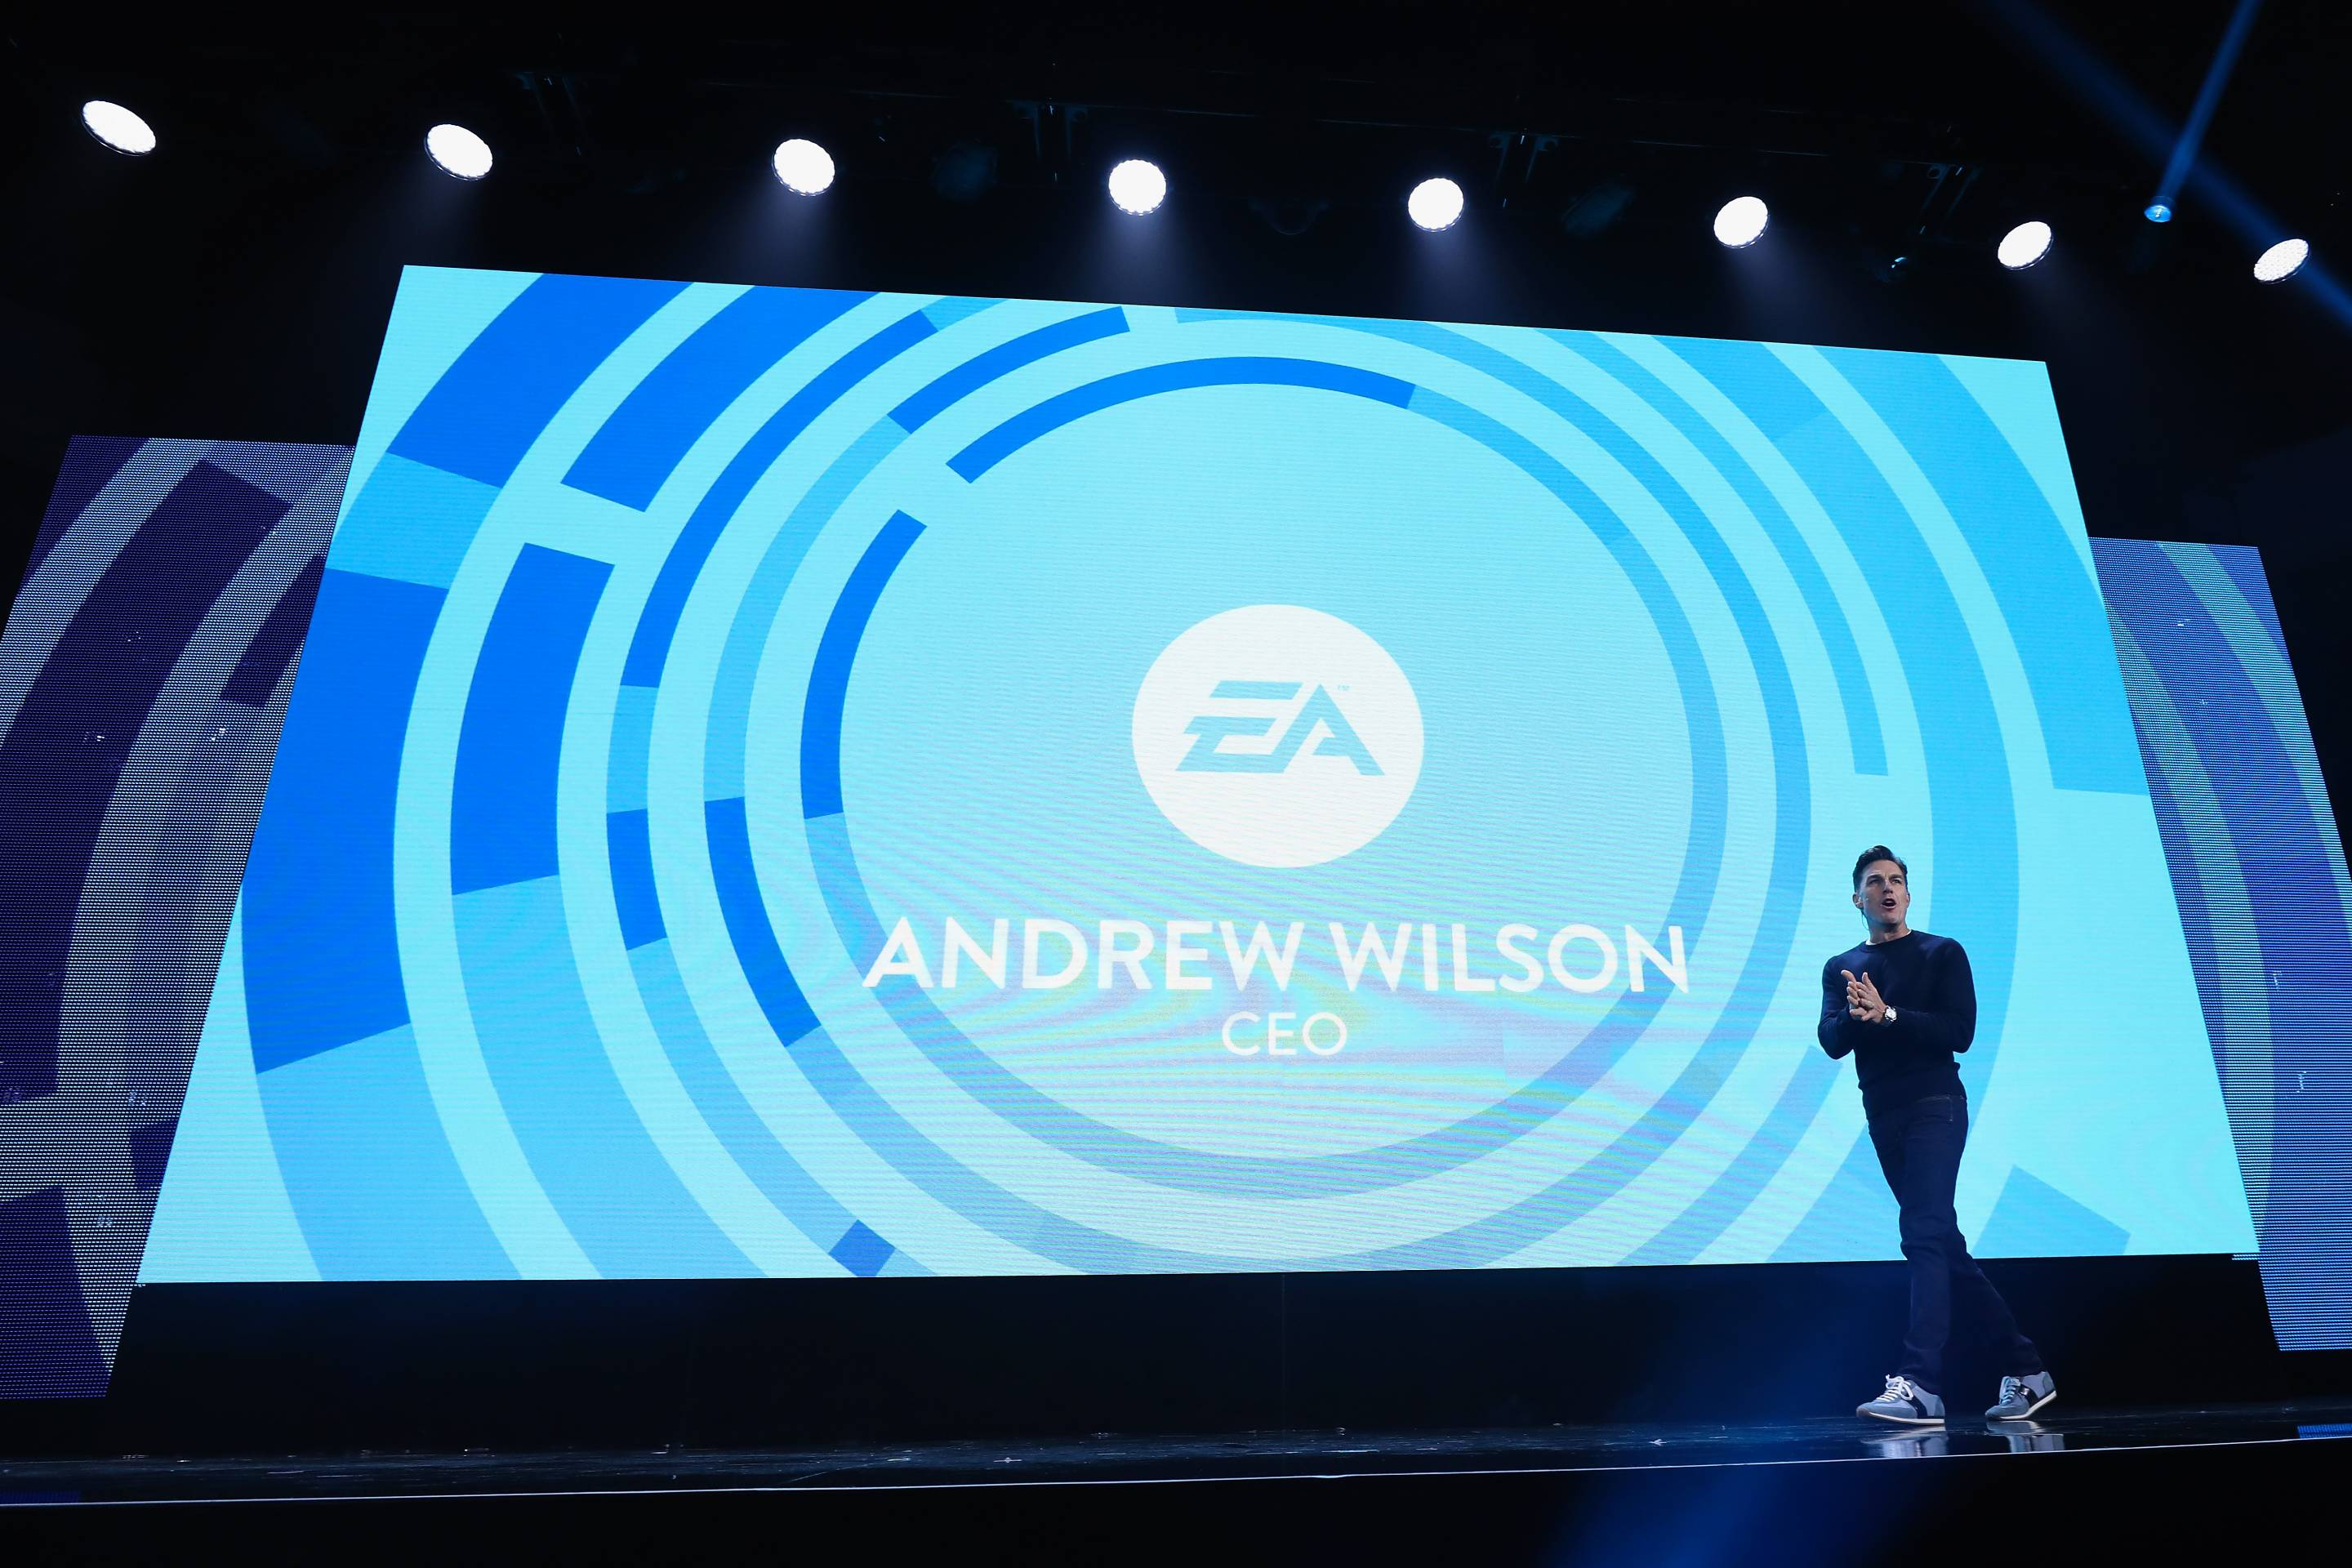 Game Maker Electronic Arts Holds Annual Event At E3 Industry Event In Los Angeles